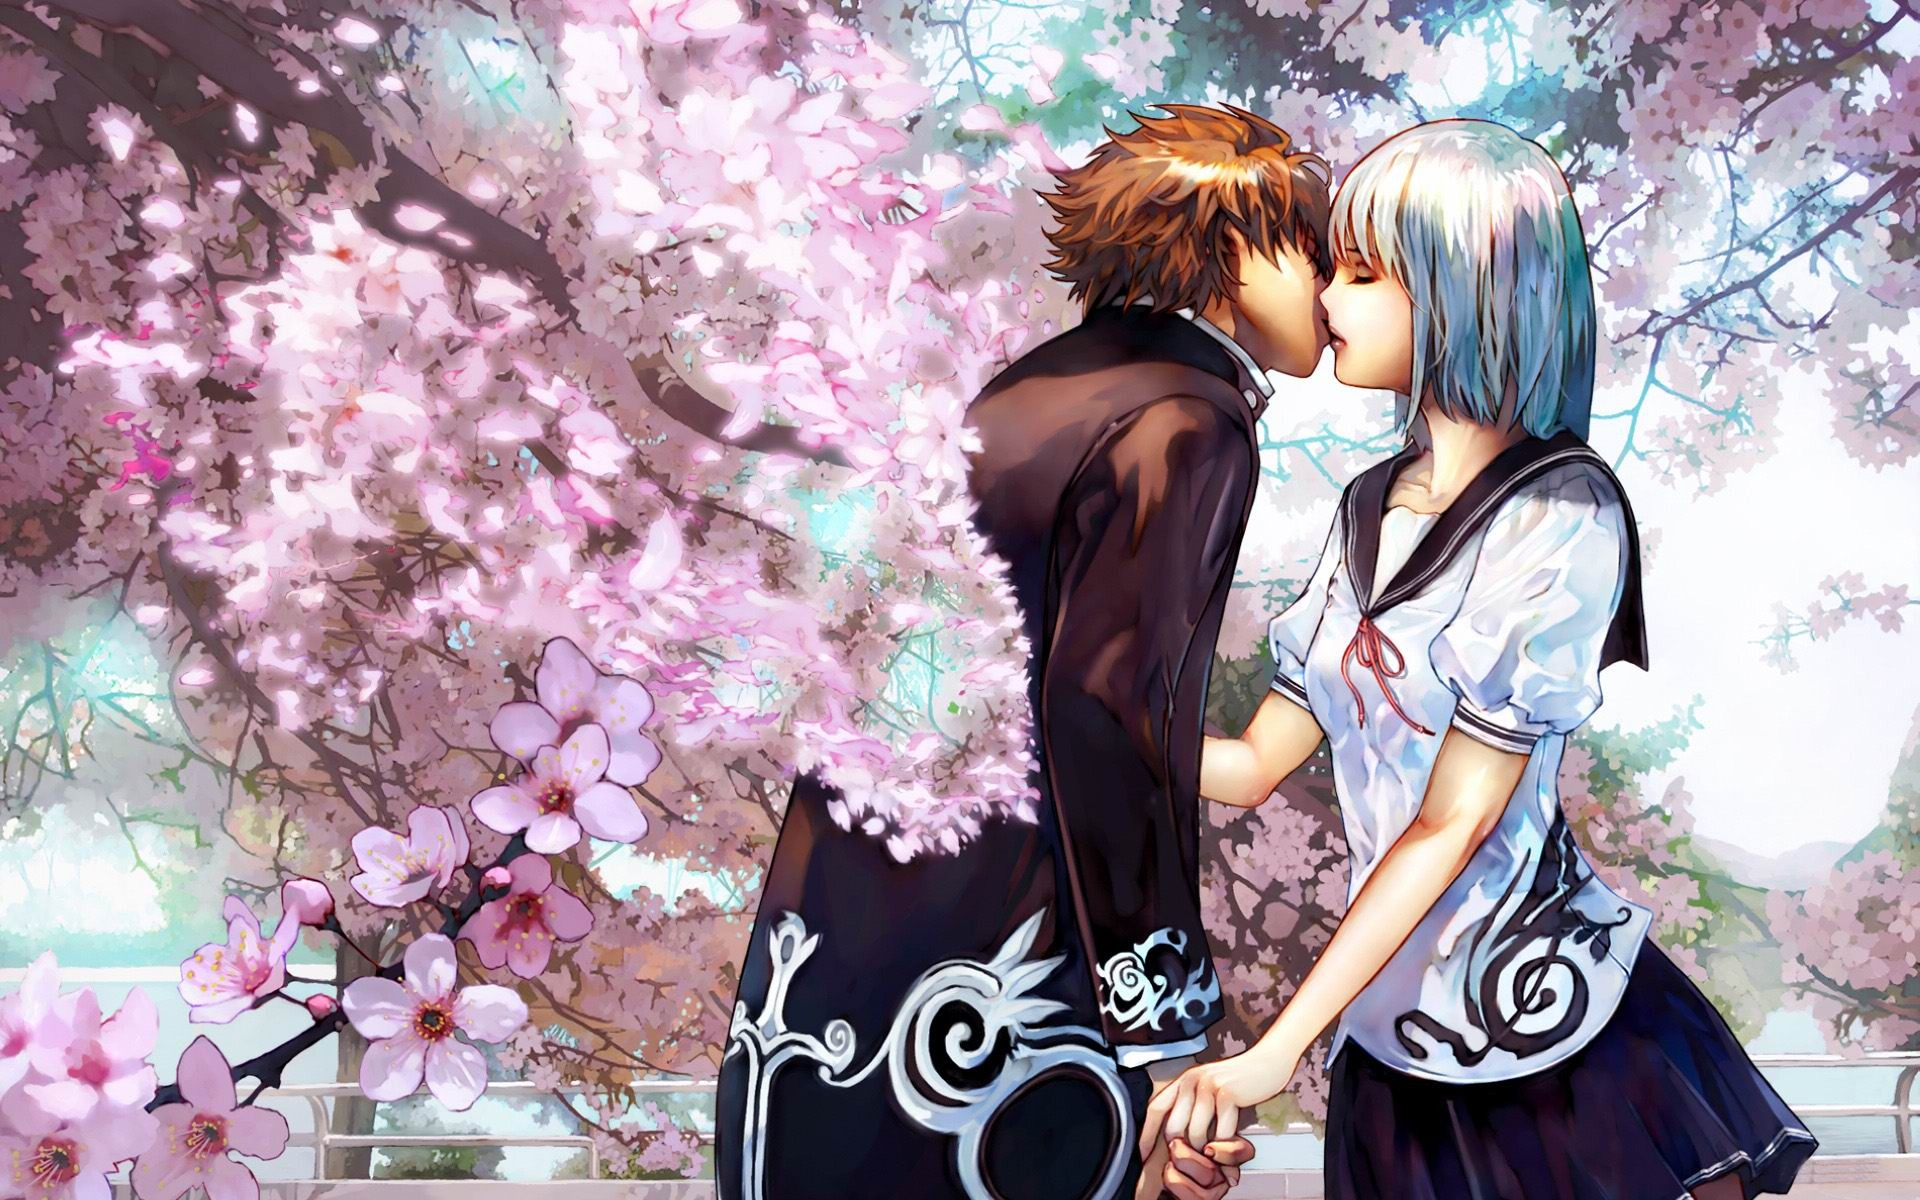 Anime+couples+kissing+wallpaper Wallpaper